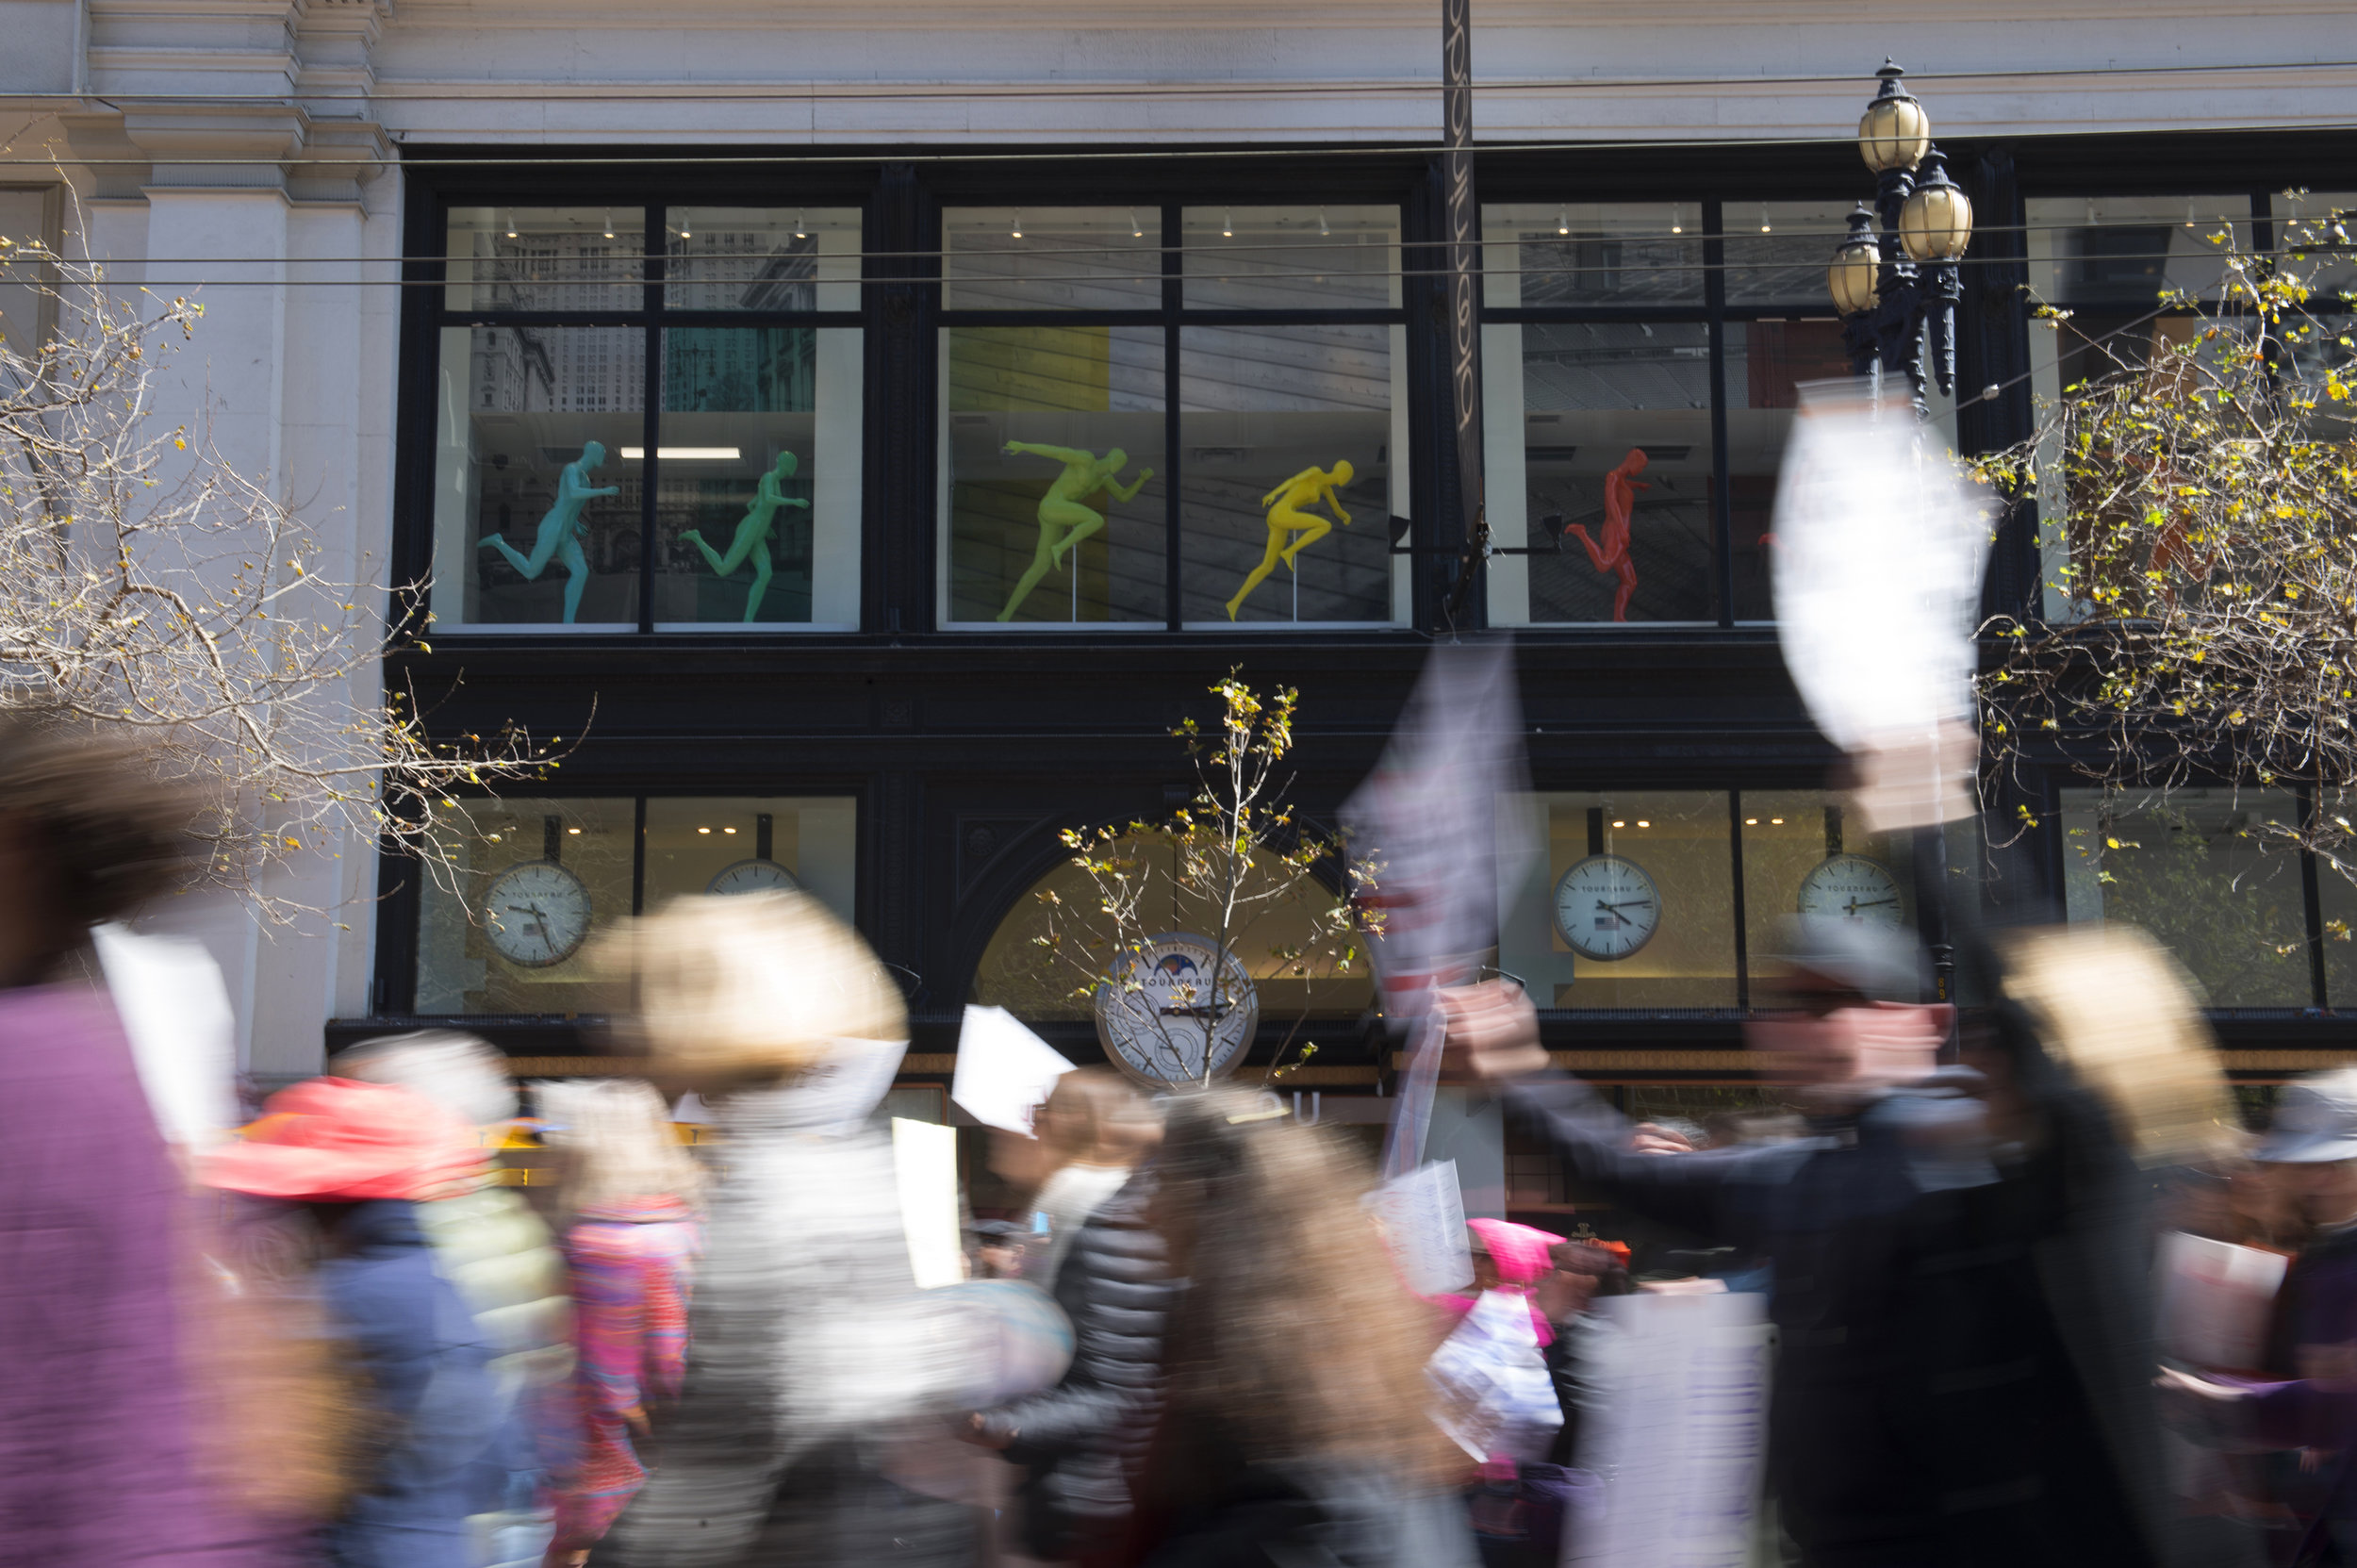 'March for our Lives' protesters march down Market Street past Adidas Store mannequins in San Francisco, Ca. on Saturday, March 24, 2018. The gathering in San Francisco was one of many marches nationwide to advocate for voter registration in an effort to vote to curb U.S. gun laws. Photo by David Andrews.